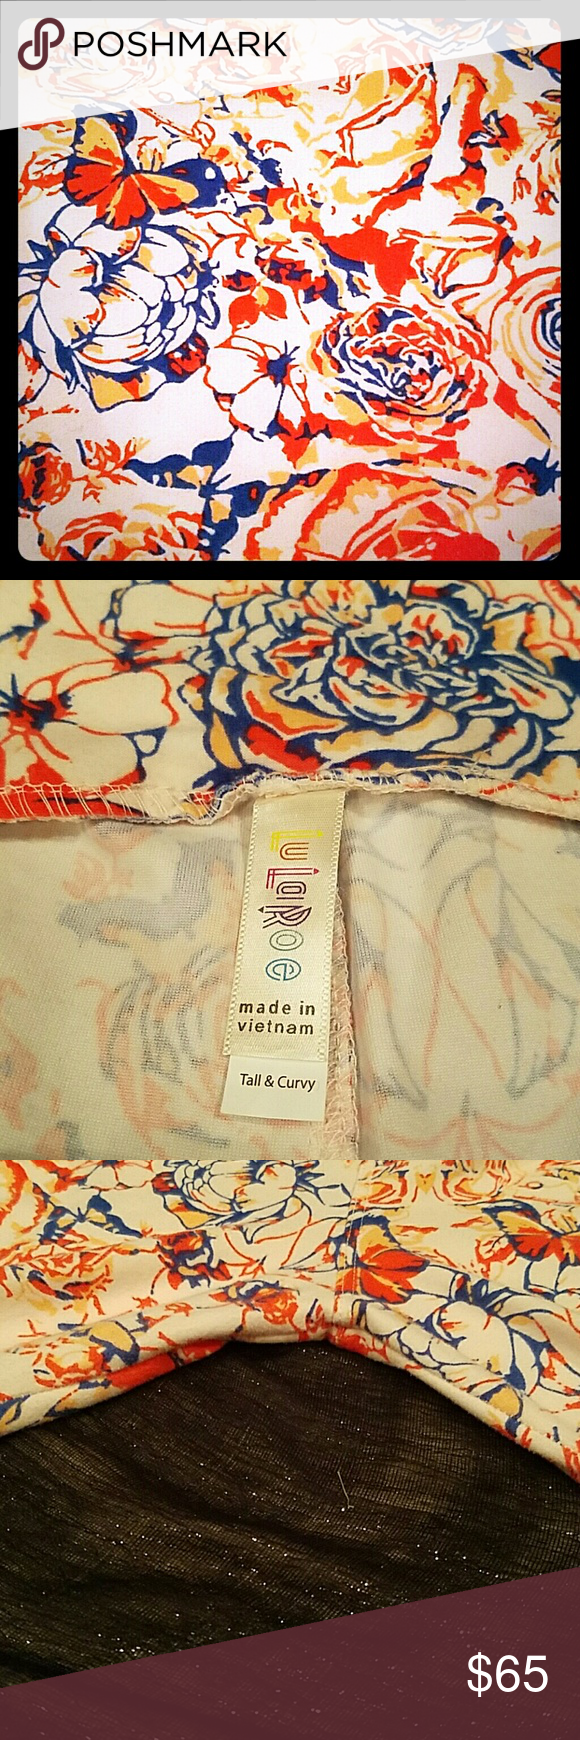 LuLaRoe unicorn legging   rose and butterfly Lularoe butter soft leggings with roses and butterfly design. Light and dark pink with a blue edge. Super soft and comfortable. TC for size 14-22. Worn once and washed by LuLaRoe directions. No stains, rips, or pilling. LuLaRoe Pants Leggings